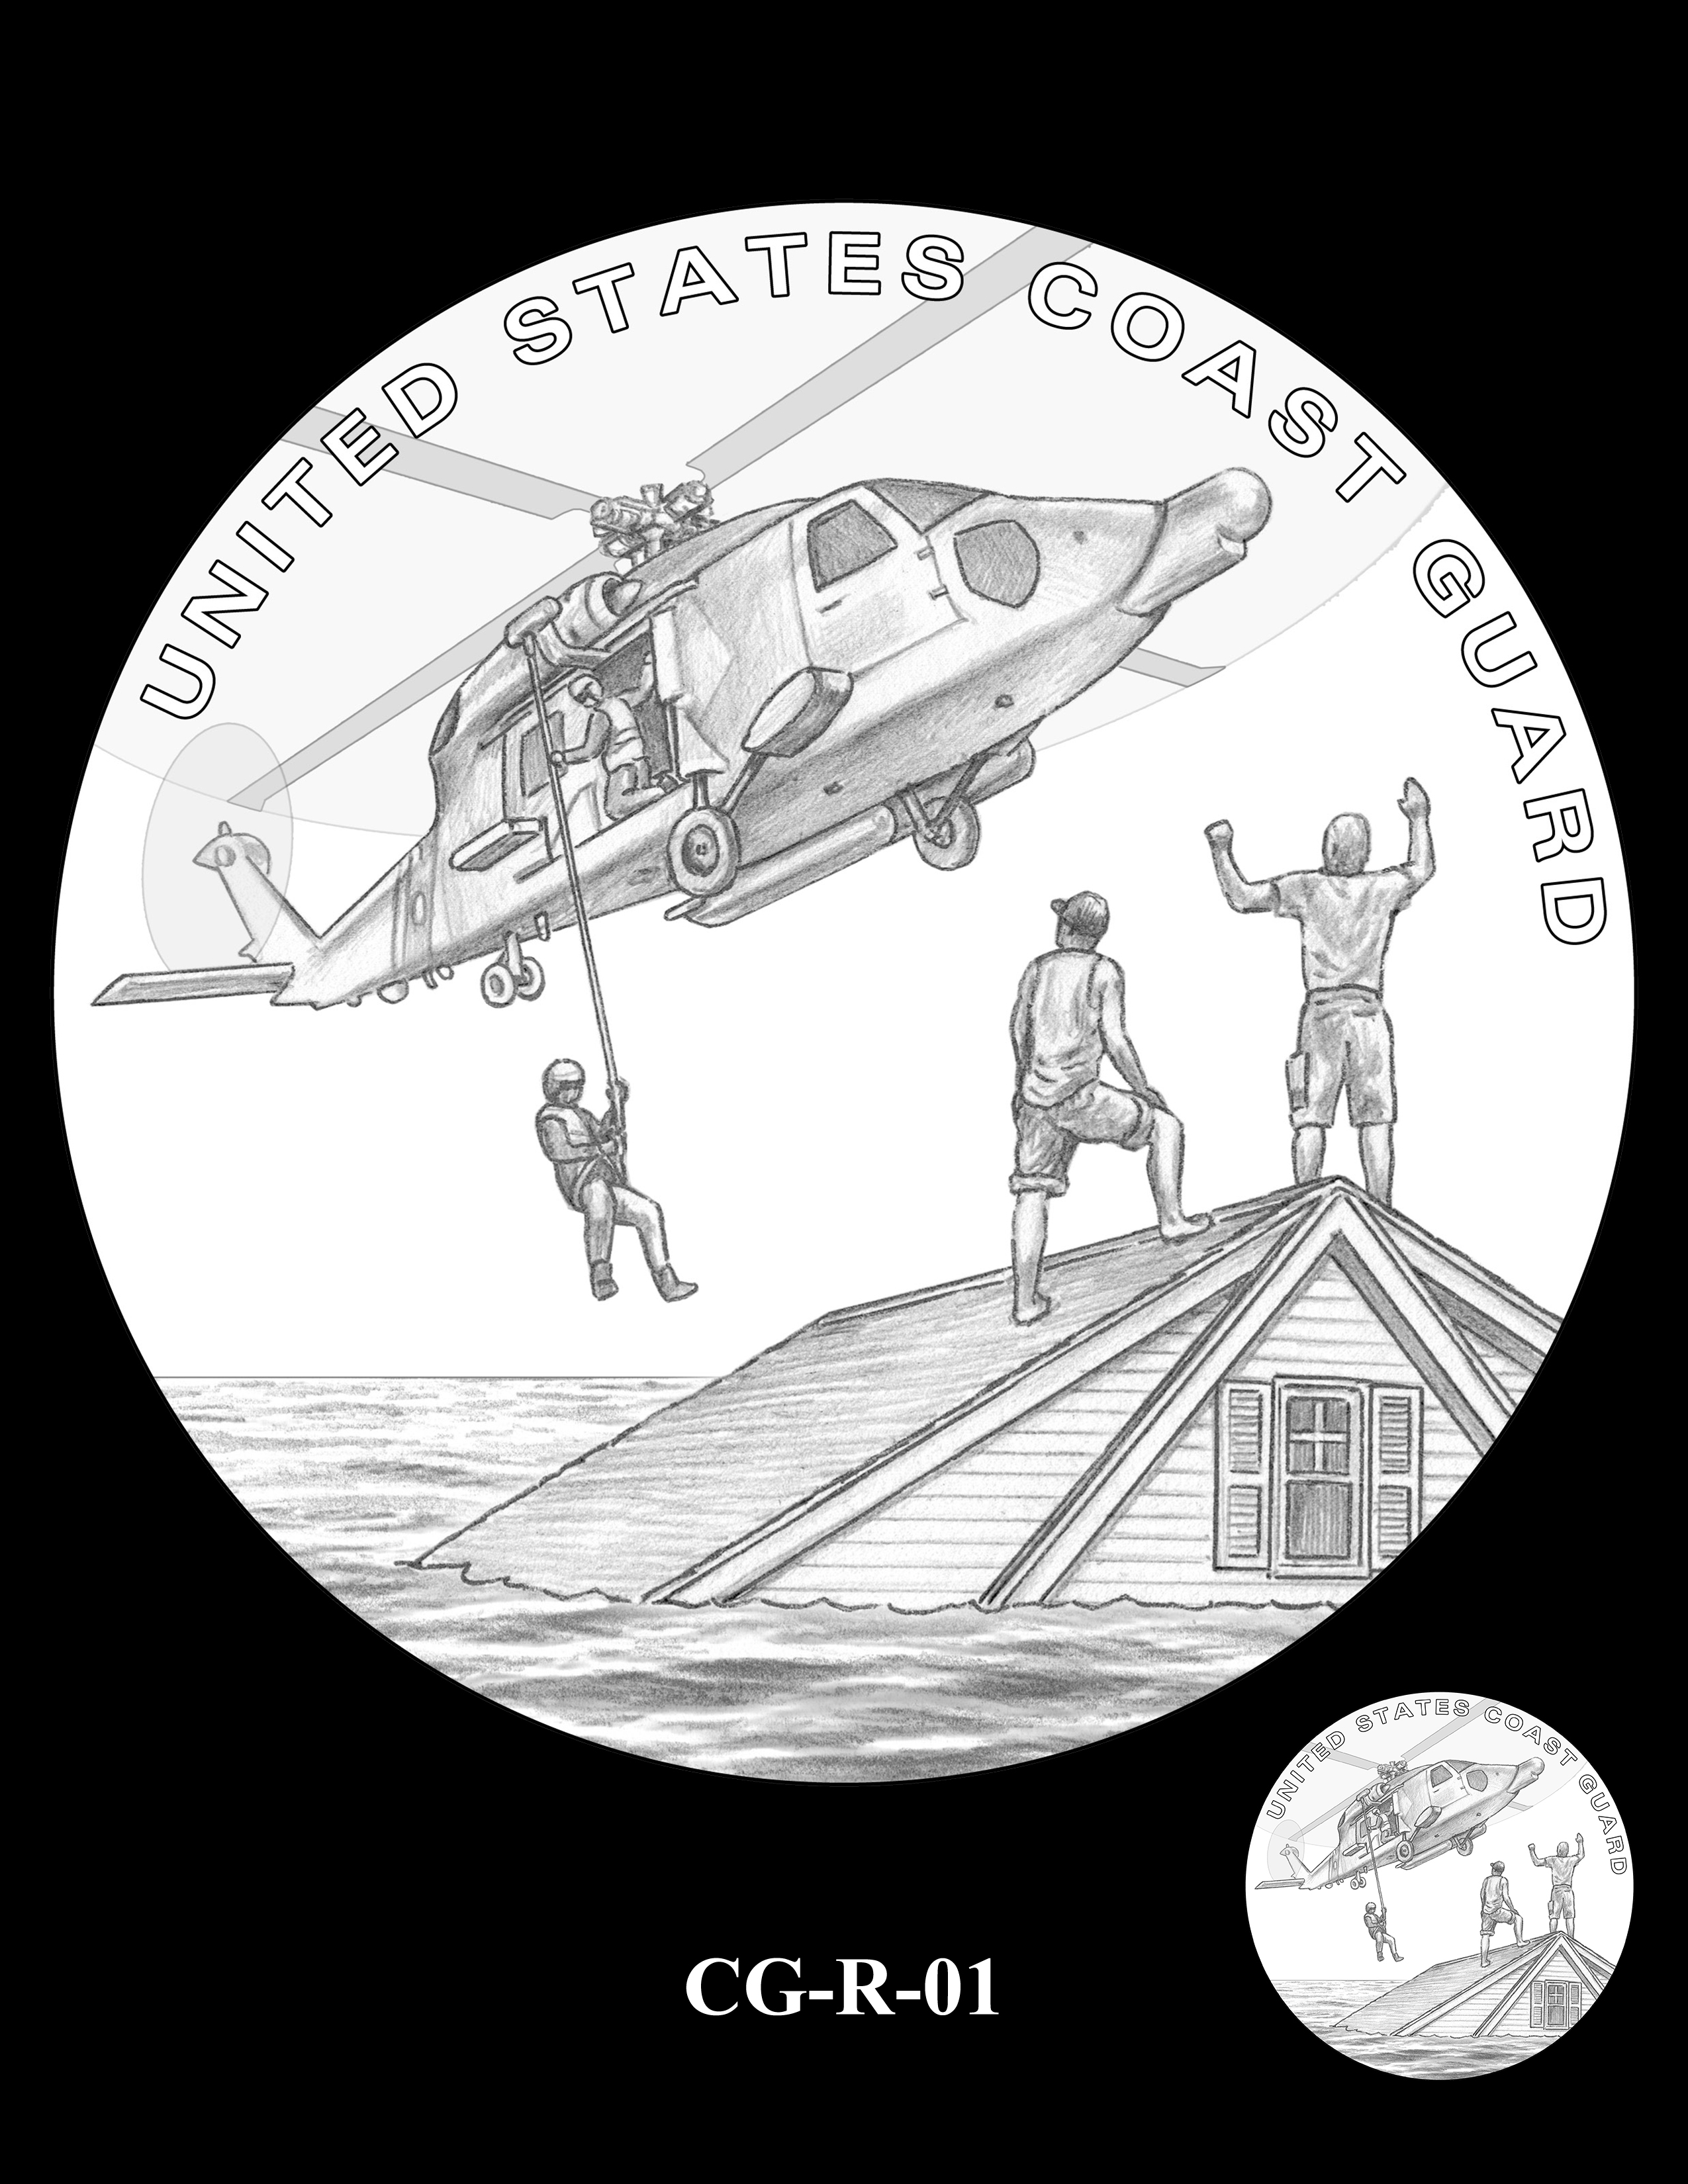 CG-R-01 -- Armed Forces Medal - Coast Guard